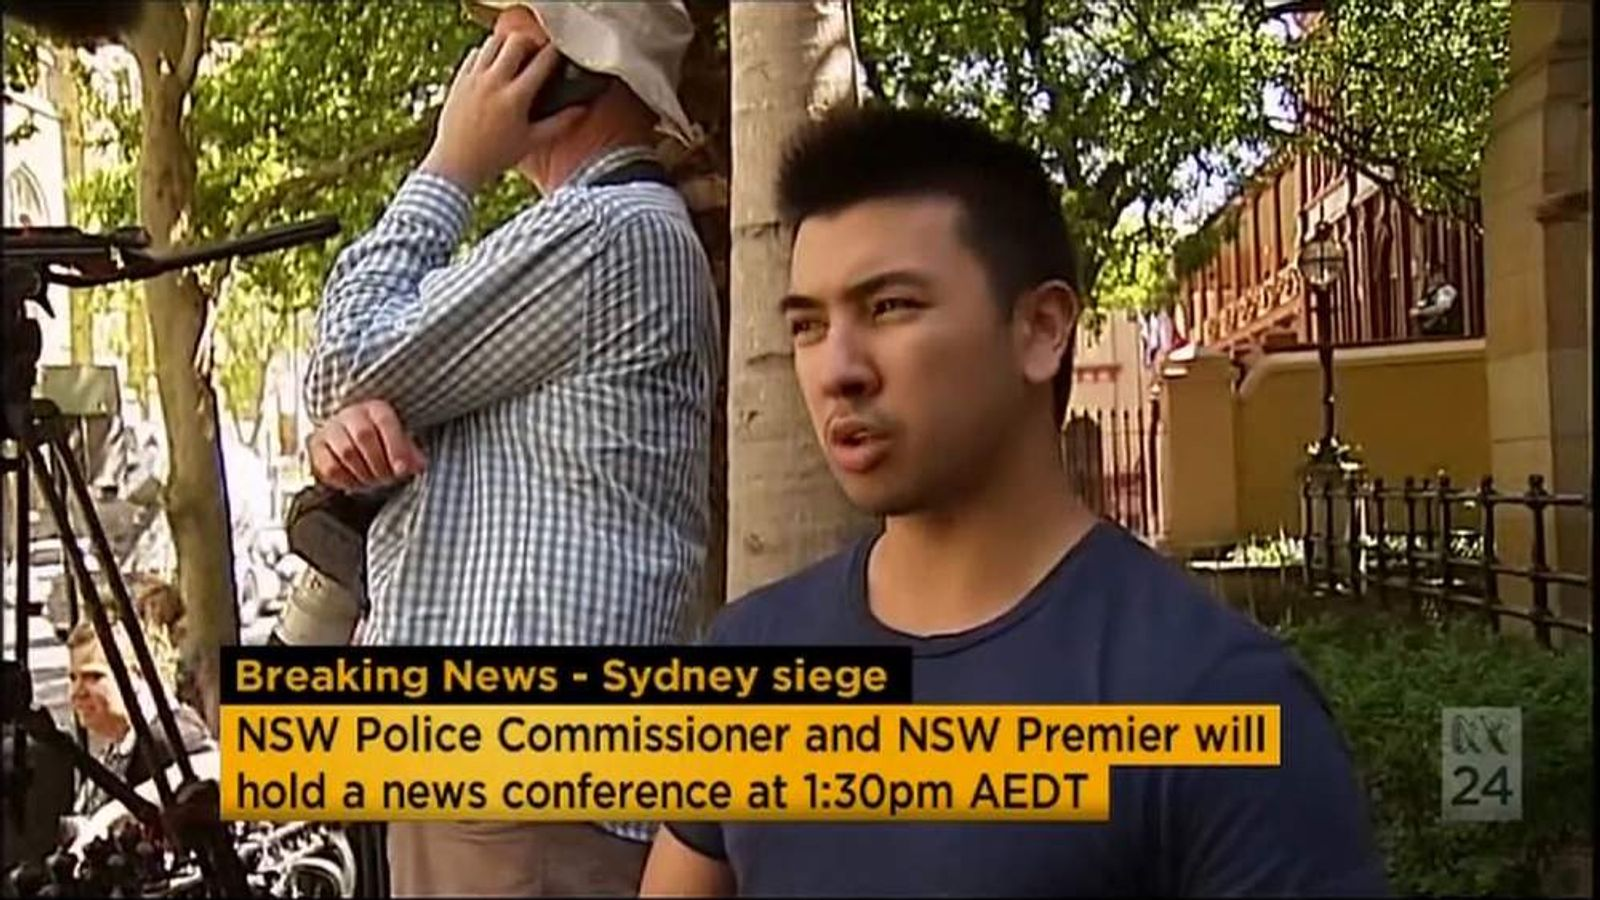 An eyewitness from the Sydney hostage situation